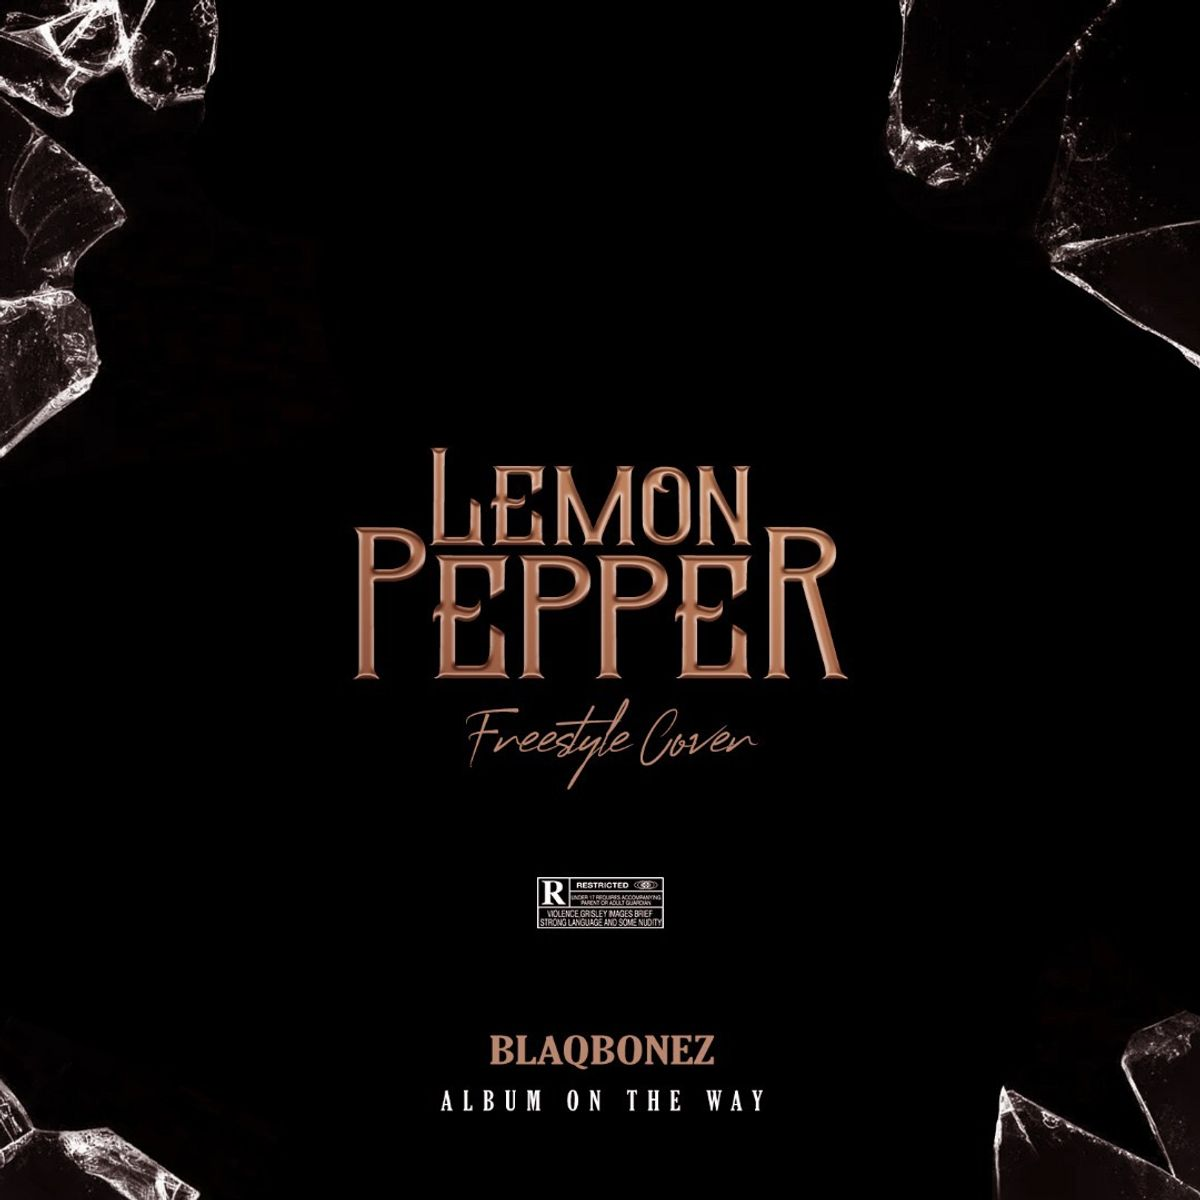 Blaqbonez - Album On The Way (Lemon Pepper Freestyle)